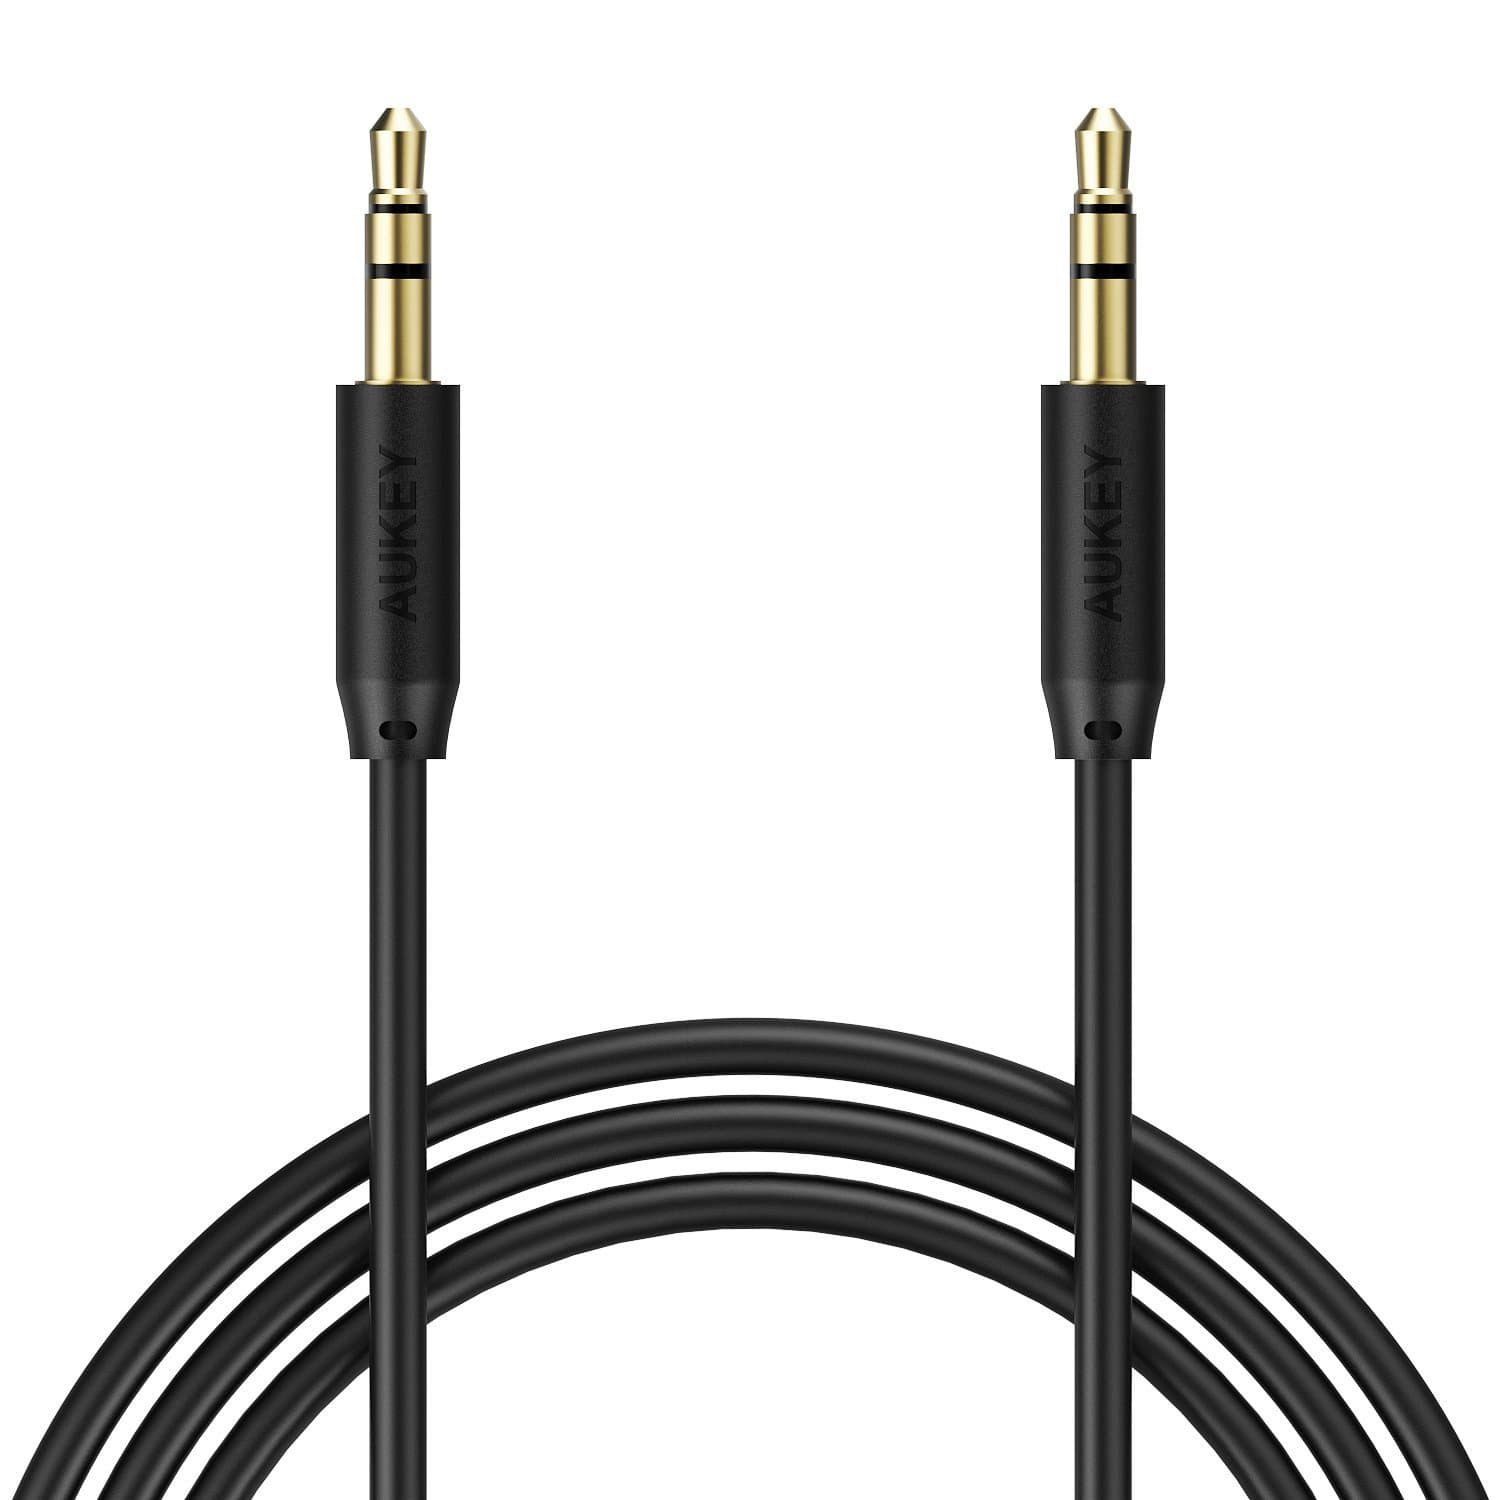 CB-V10 Premium 3.5mm Audio Gold Plated AUX Cable 1.2 METER